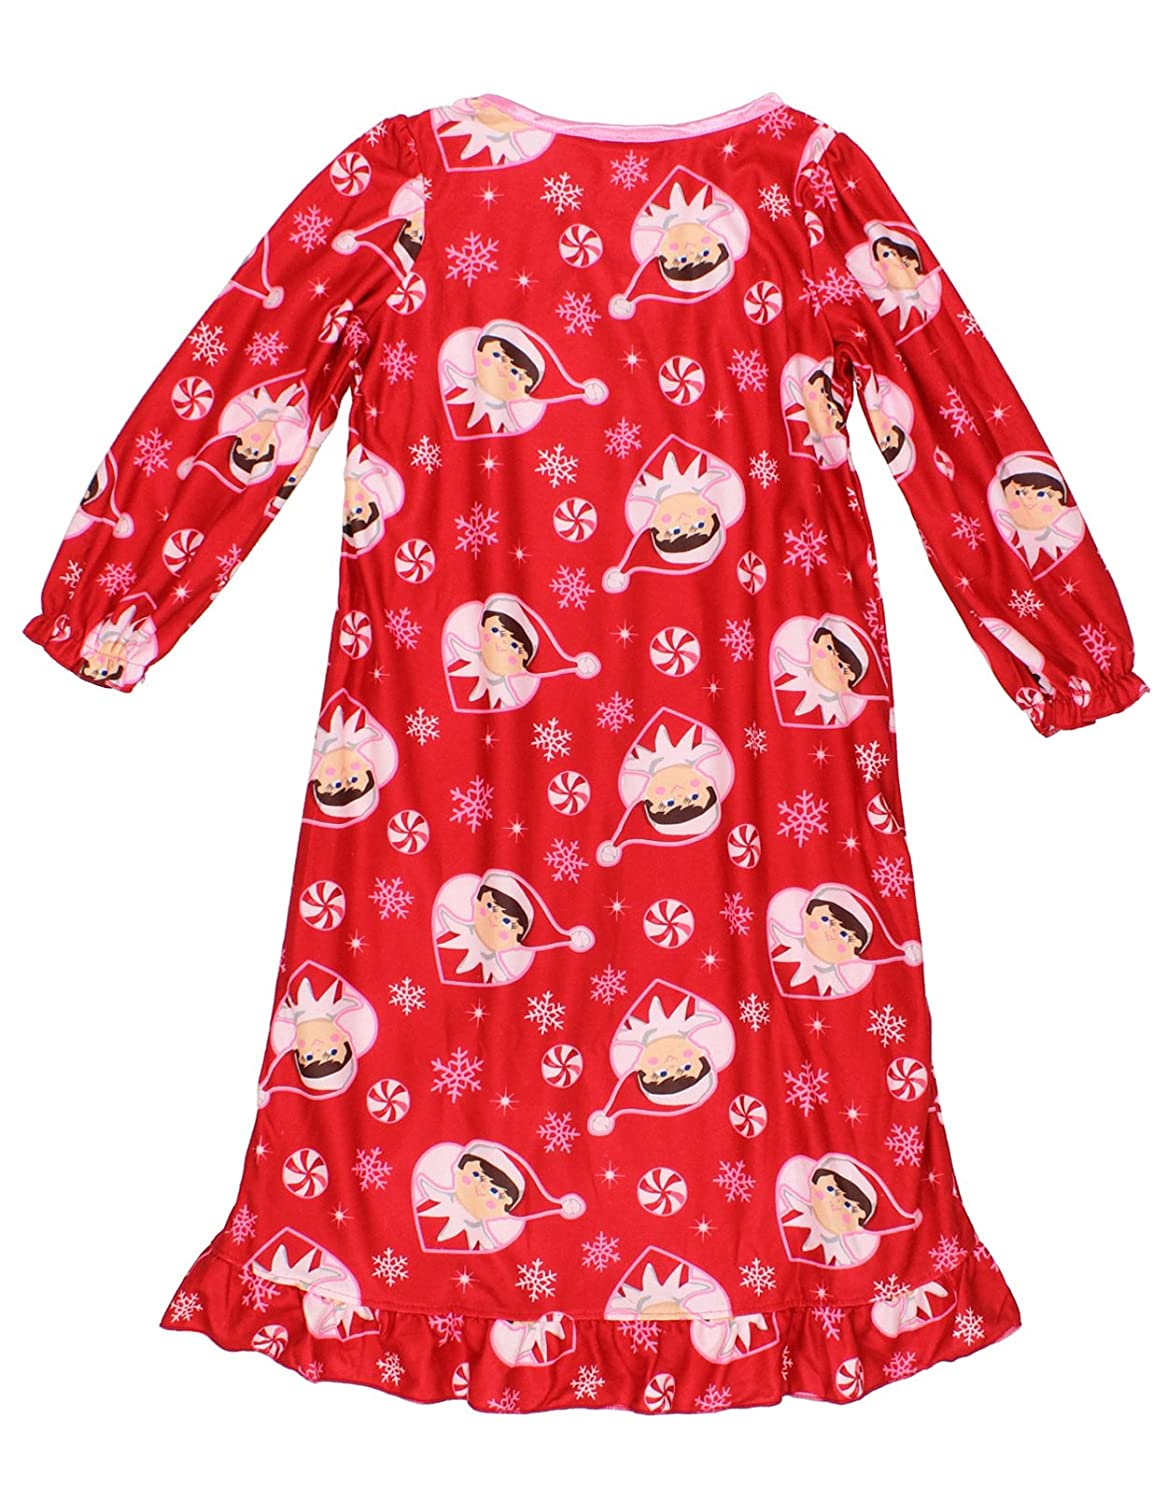 Amazon.com: Elf on the Shelf Girls Flannel Granny Gown Nightgown ...